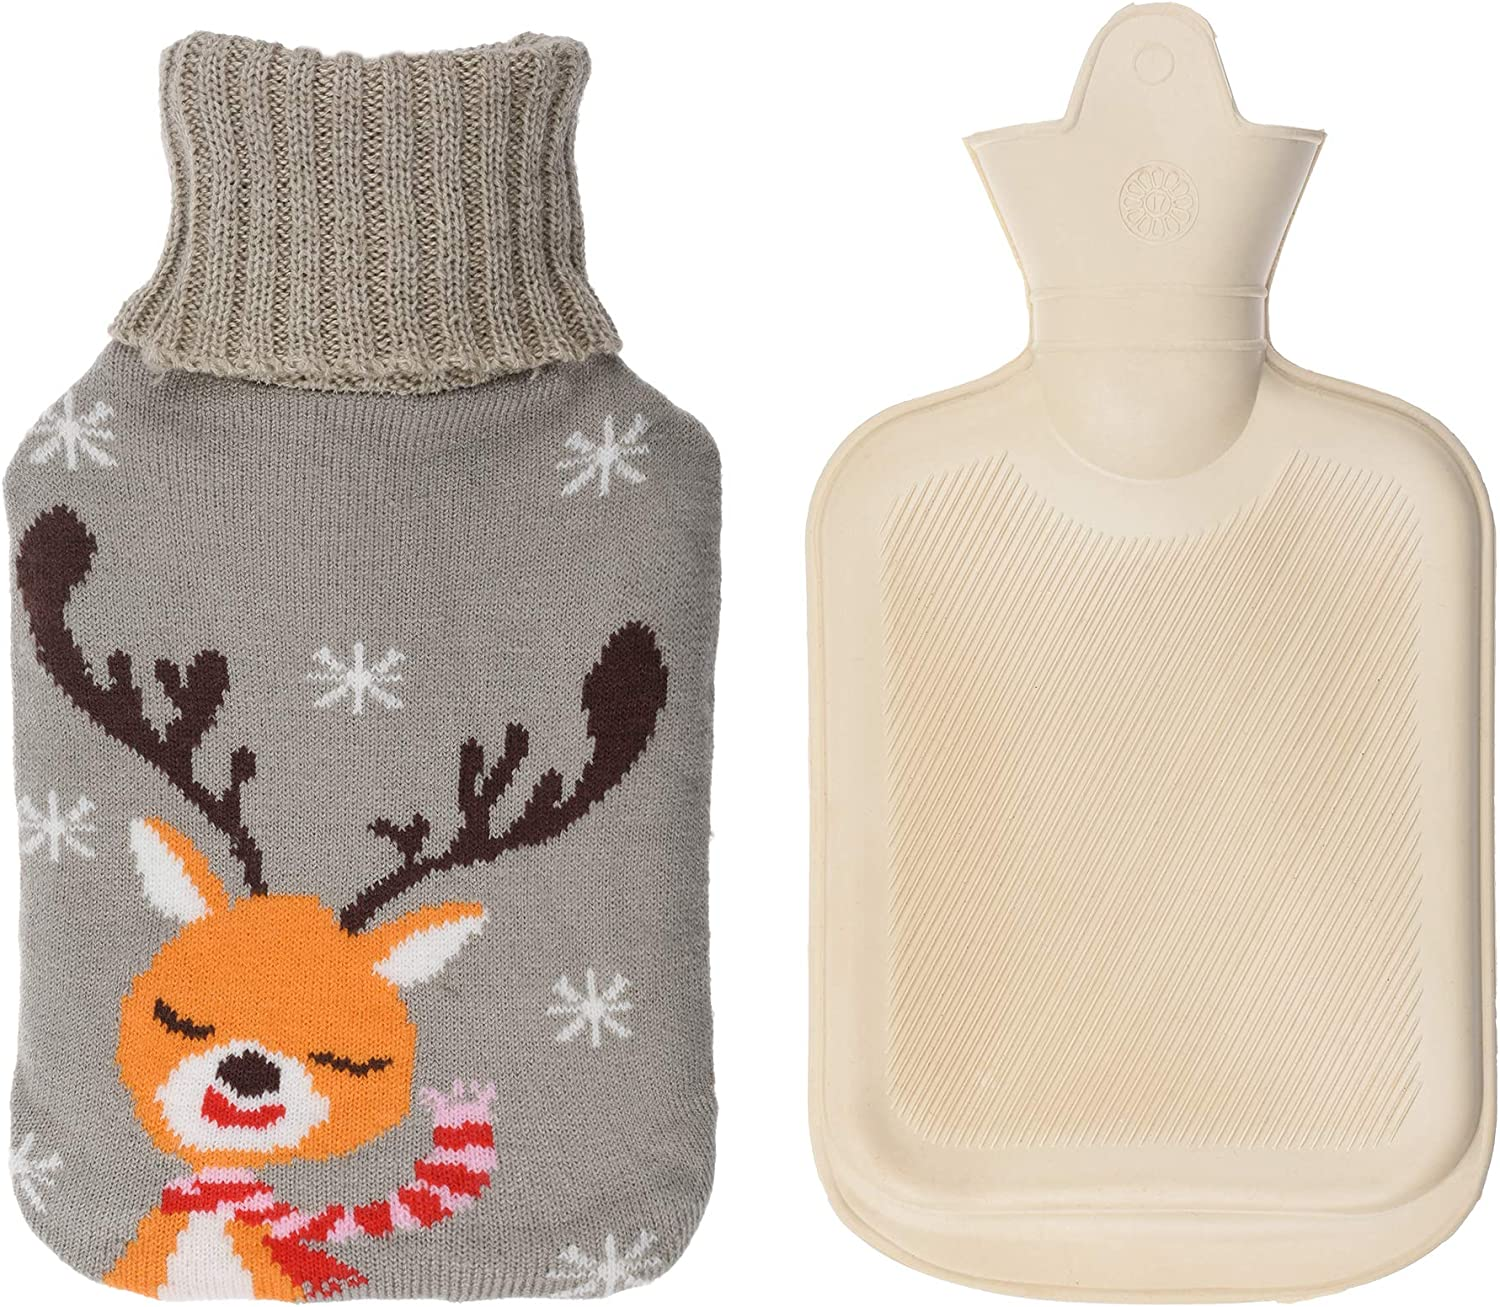 Beautyflier Cute Rubber Hot Water Bag with Plush Fleece Knitted Covers 1 Liter Water Injection Warm Heater Bag for Hand Feet Belly Warmer (Deer)